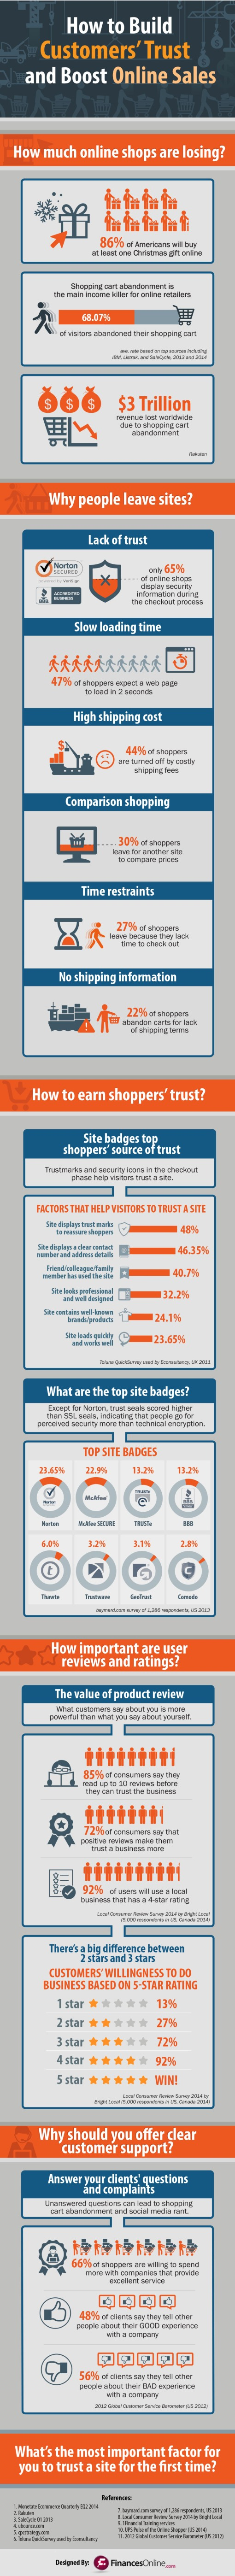 How to Build Customers' Trust_infographic draft